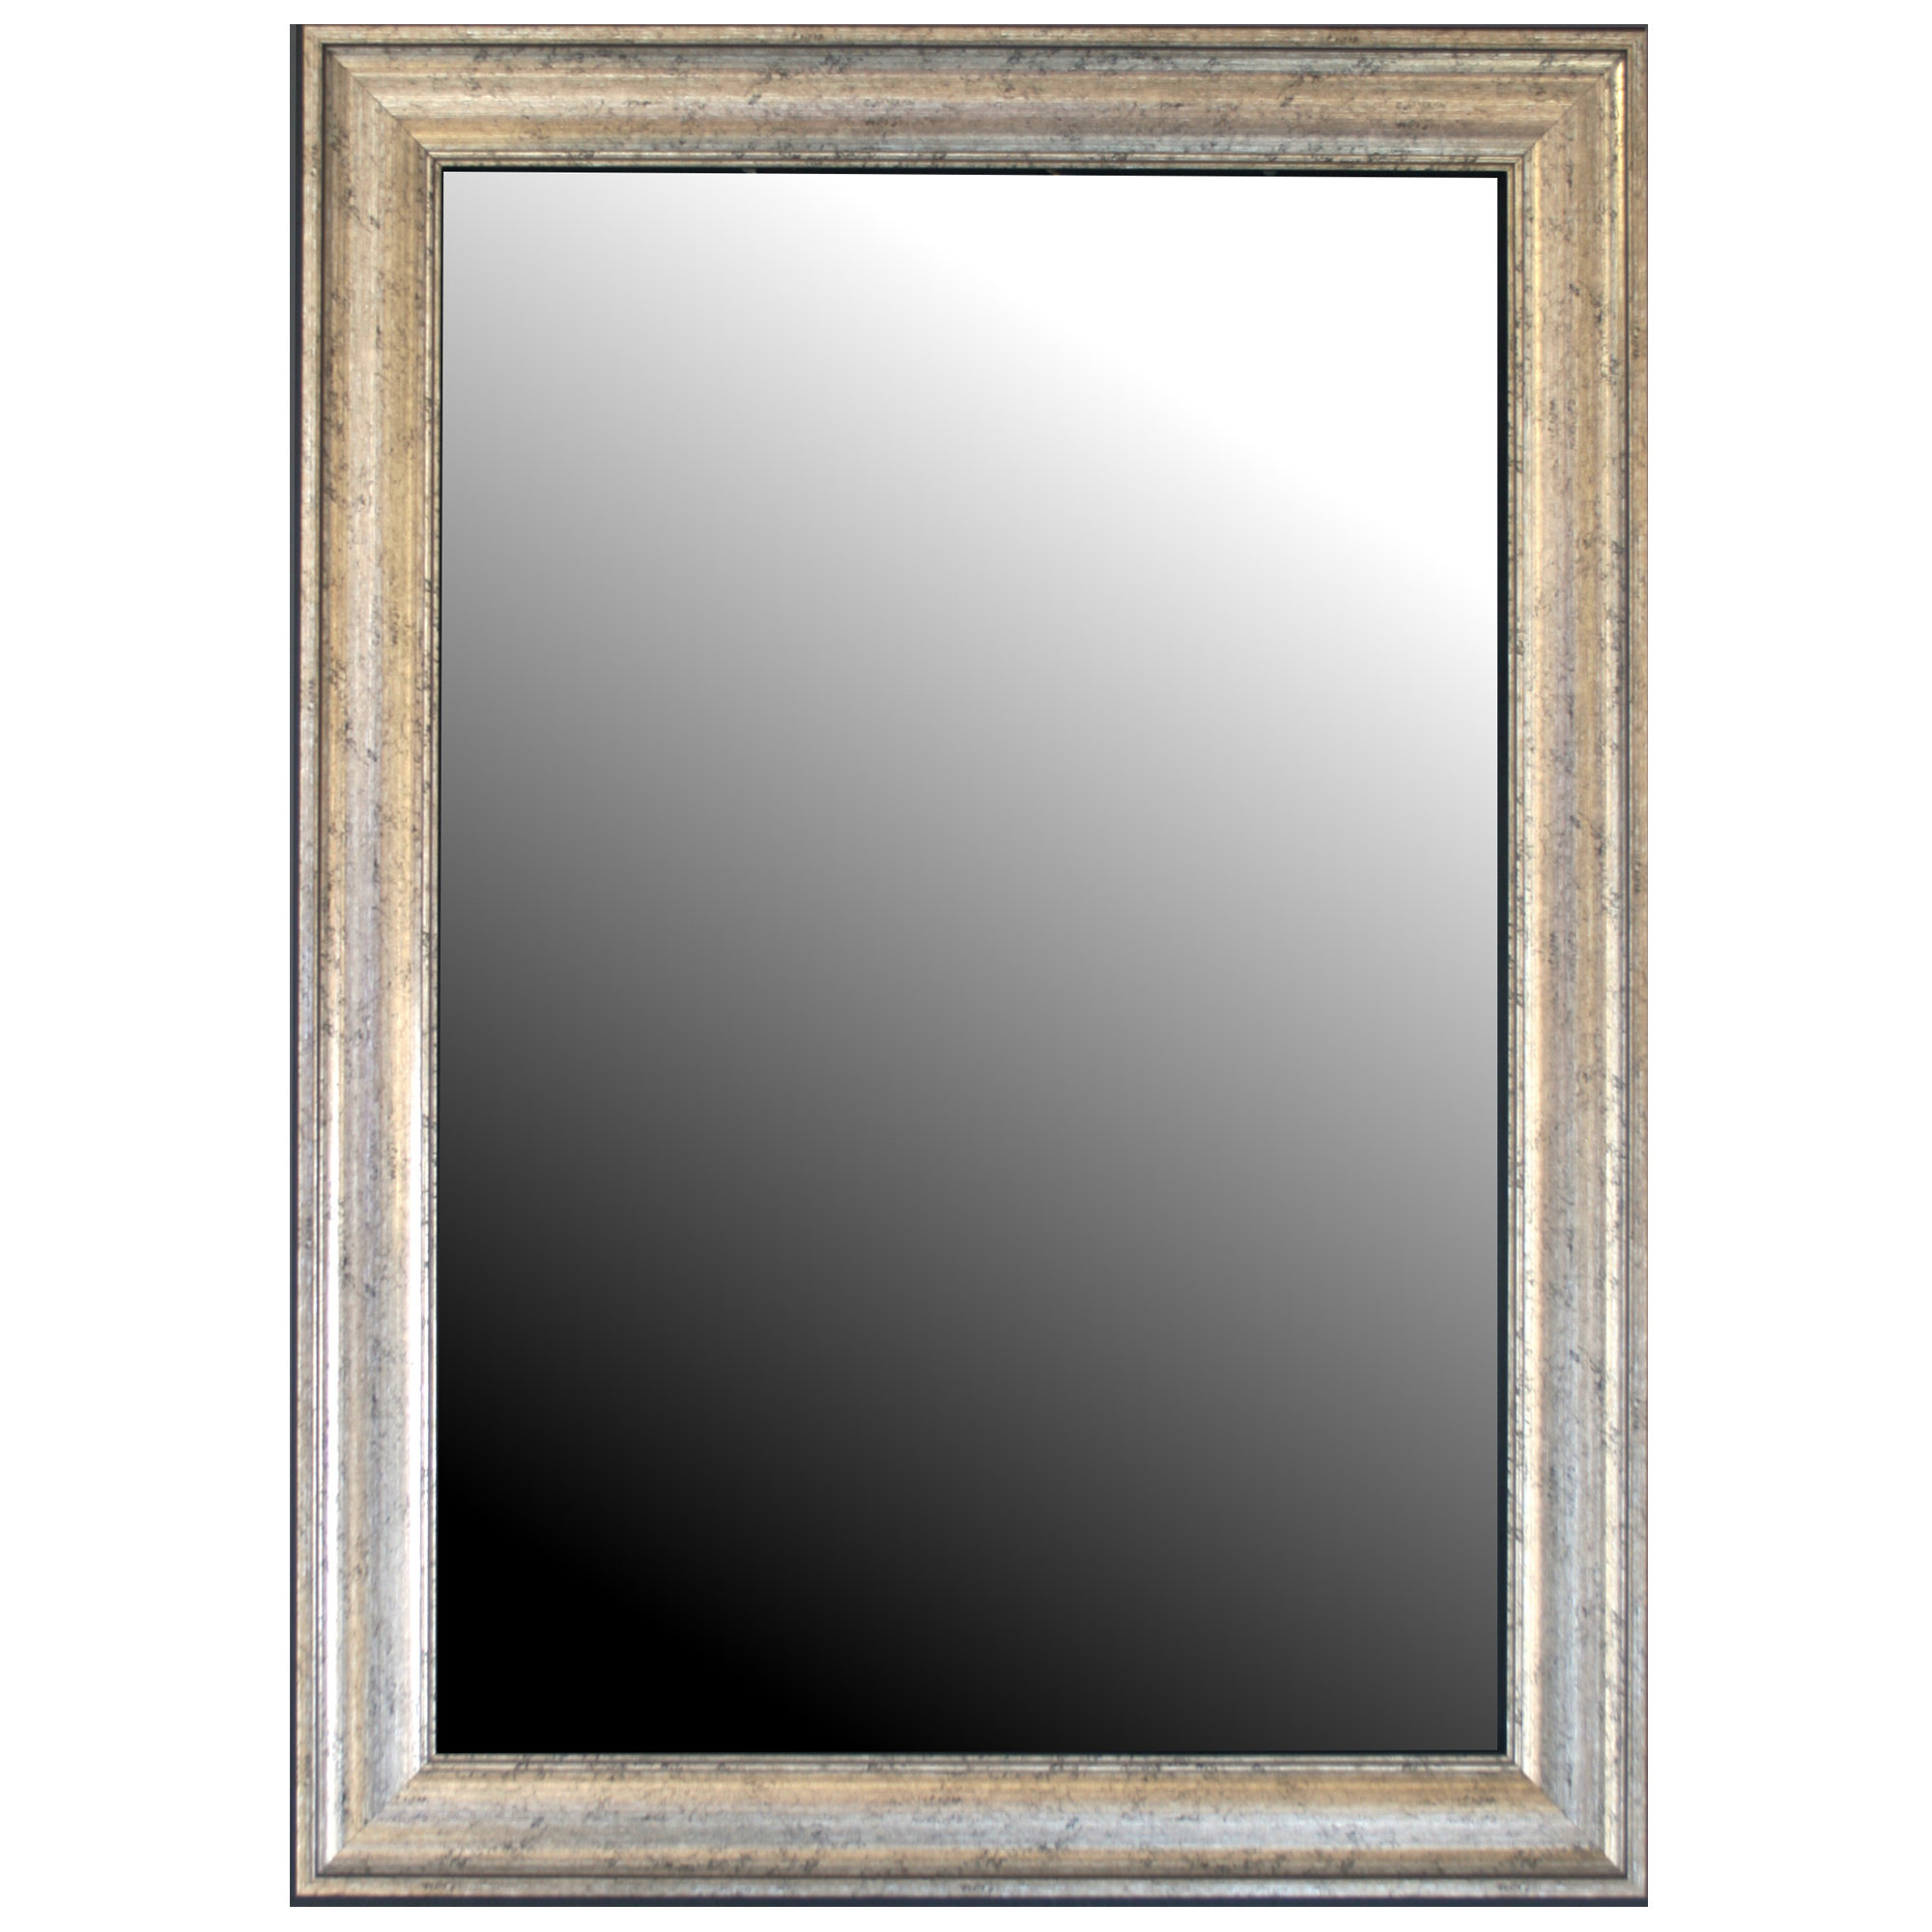 Curren Vintage Beveled Silver Wall Mirror Pertaining To Kristy Rectangular Beveled Vanity Mirrors In Distressed (Image 7 of 20)